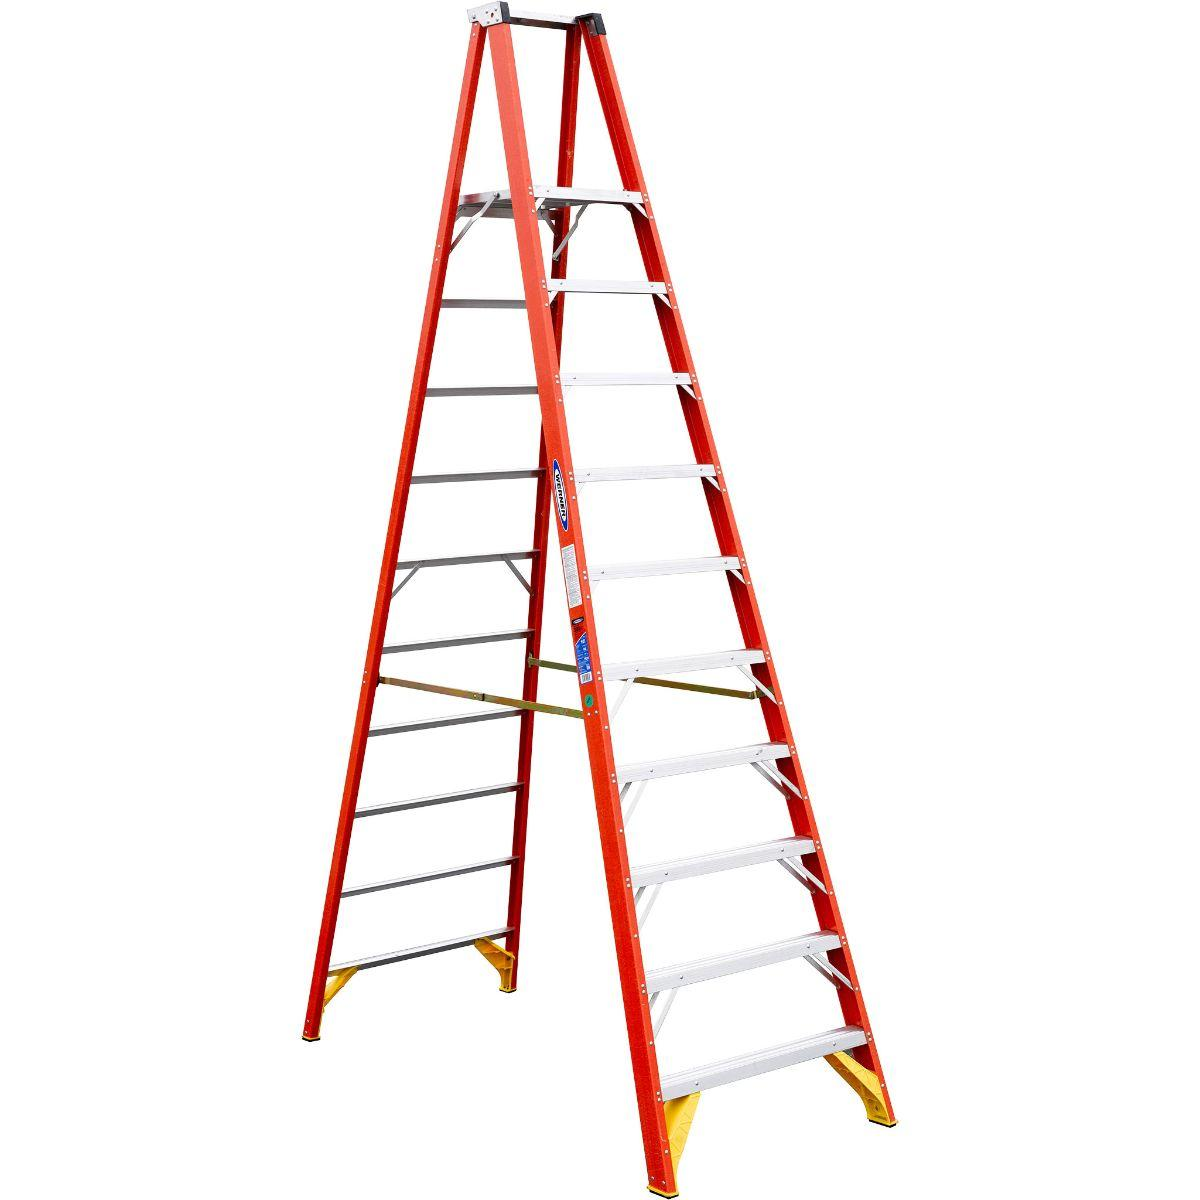 WERNER FG Platform Ladder 300LB P6210 10FT